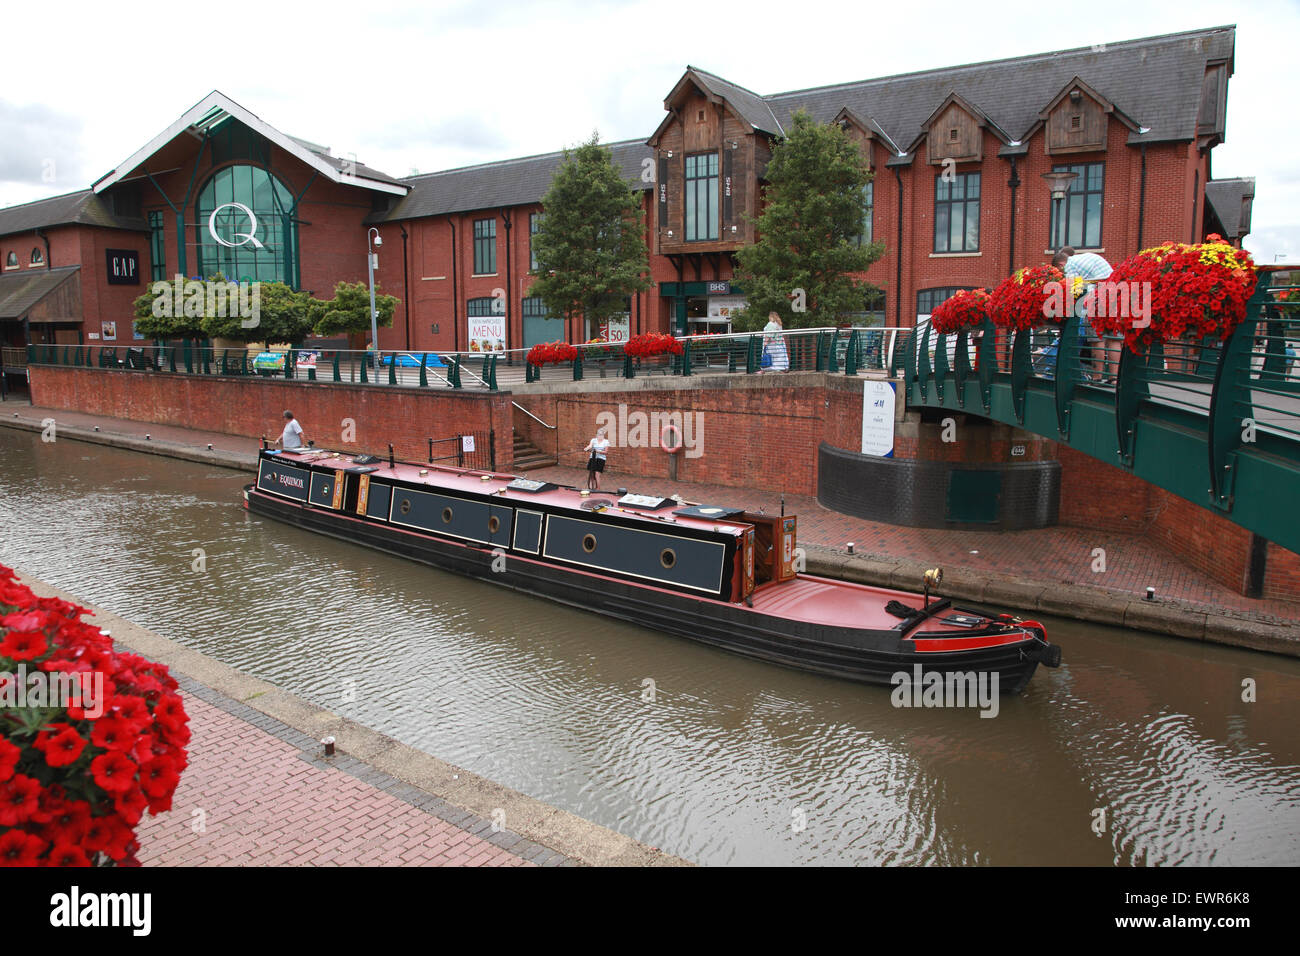 A narrowboat on the Oxford Canal in front of BanburyÕs Castle Quay shopping centre. - Stock Image